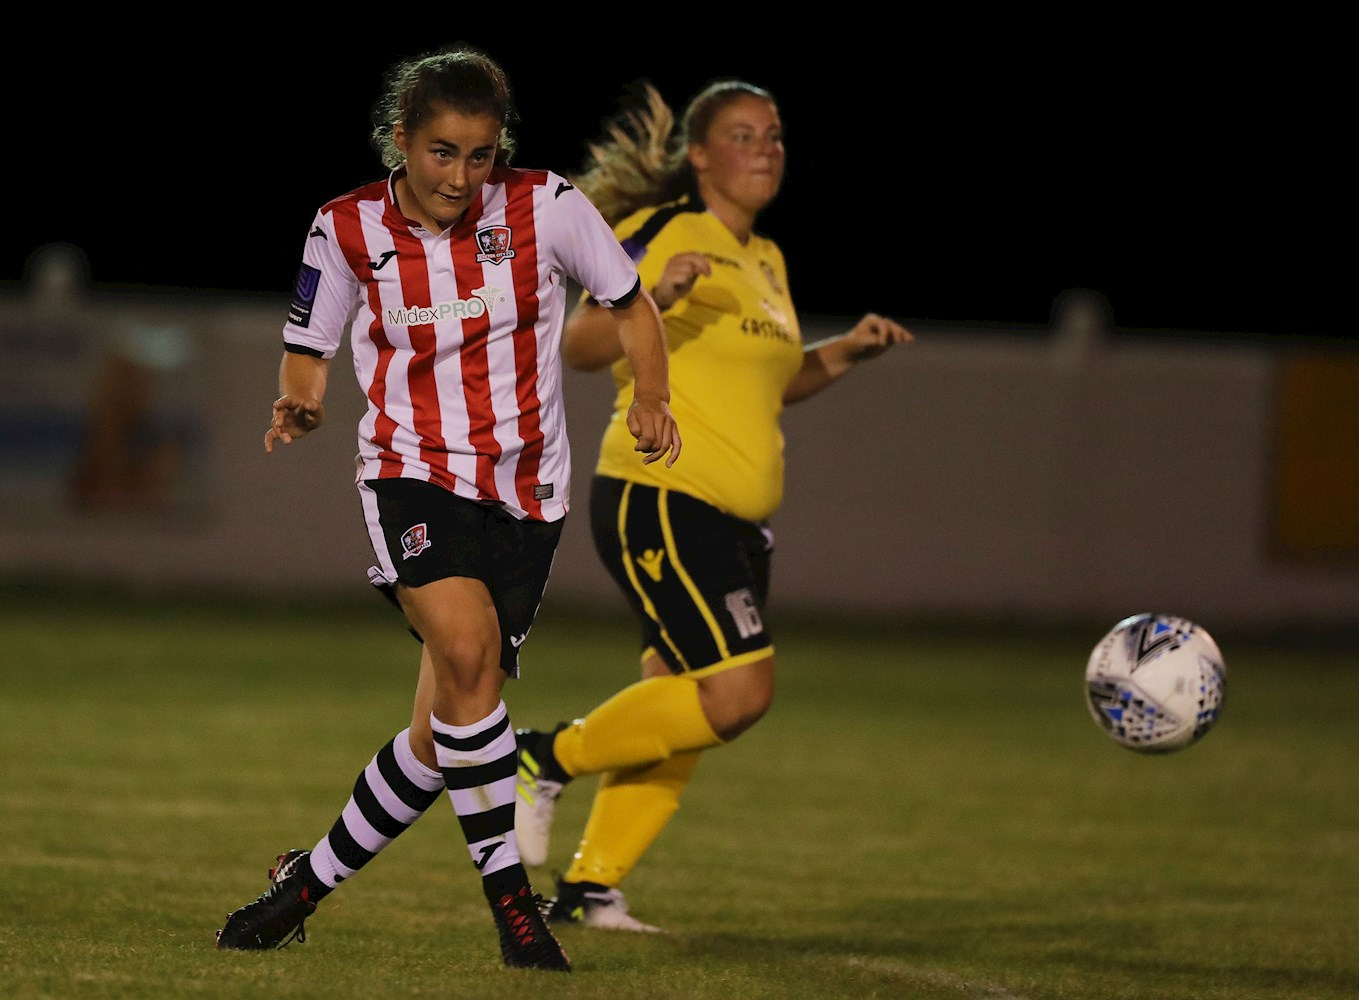 Georgie Barbour in action for the ECFC Women's team.jpg